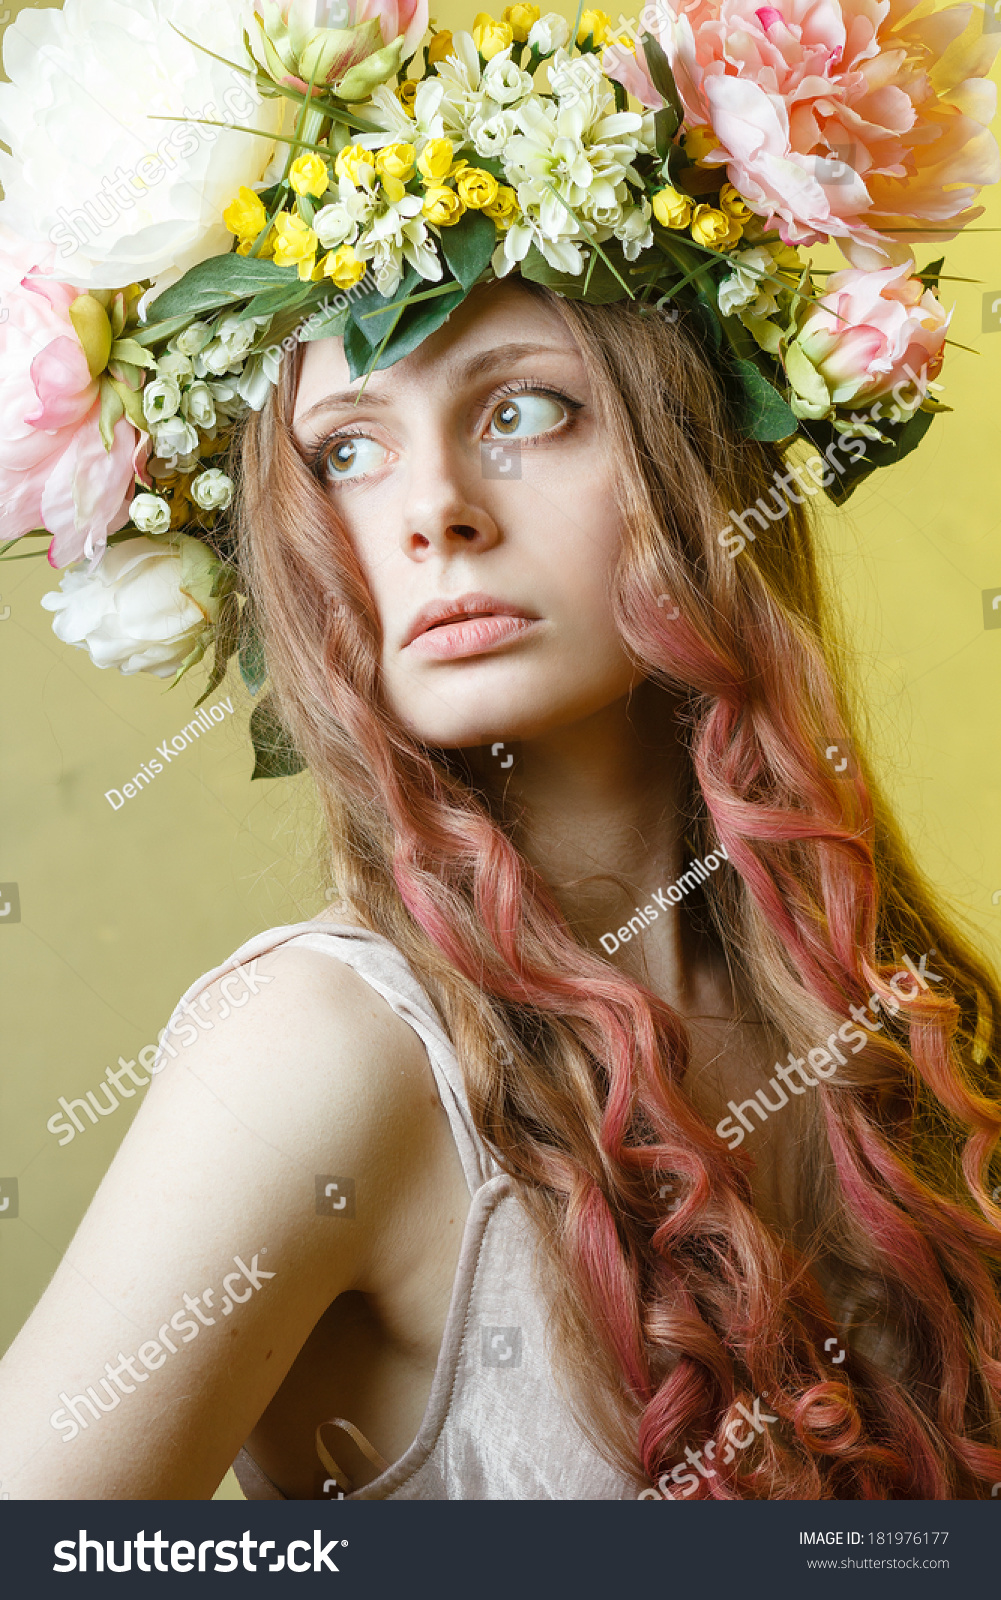 Pretty Girl Flower Crown On Head Stock Photo Edit Now 181976177